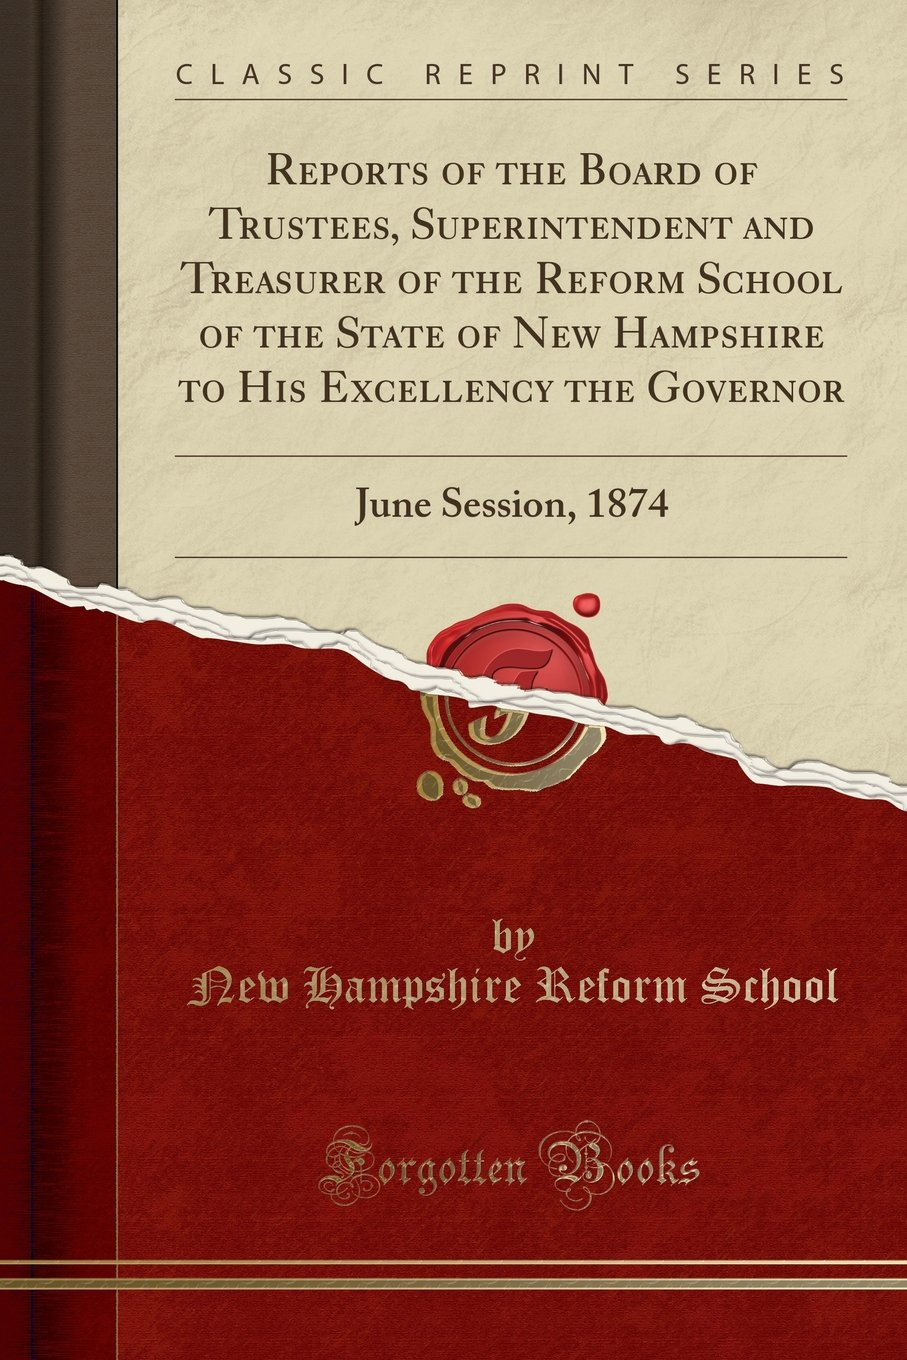 Download Reports of the Board of Trustees, Superintendent and Treasurer of the Reform School of the State of New Hampshire to His Excellency the Governor: June Session, 1874 (Classic Reprint) pdf epub